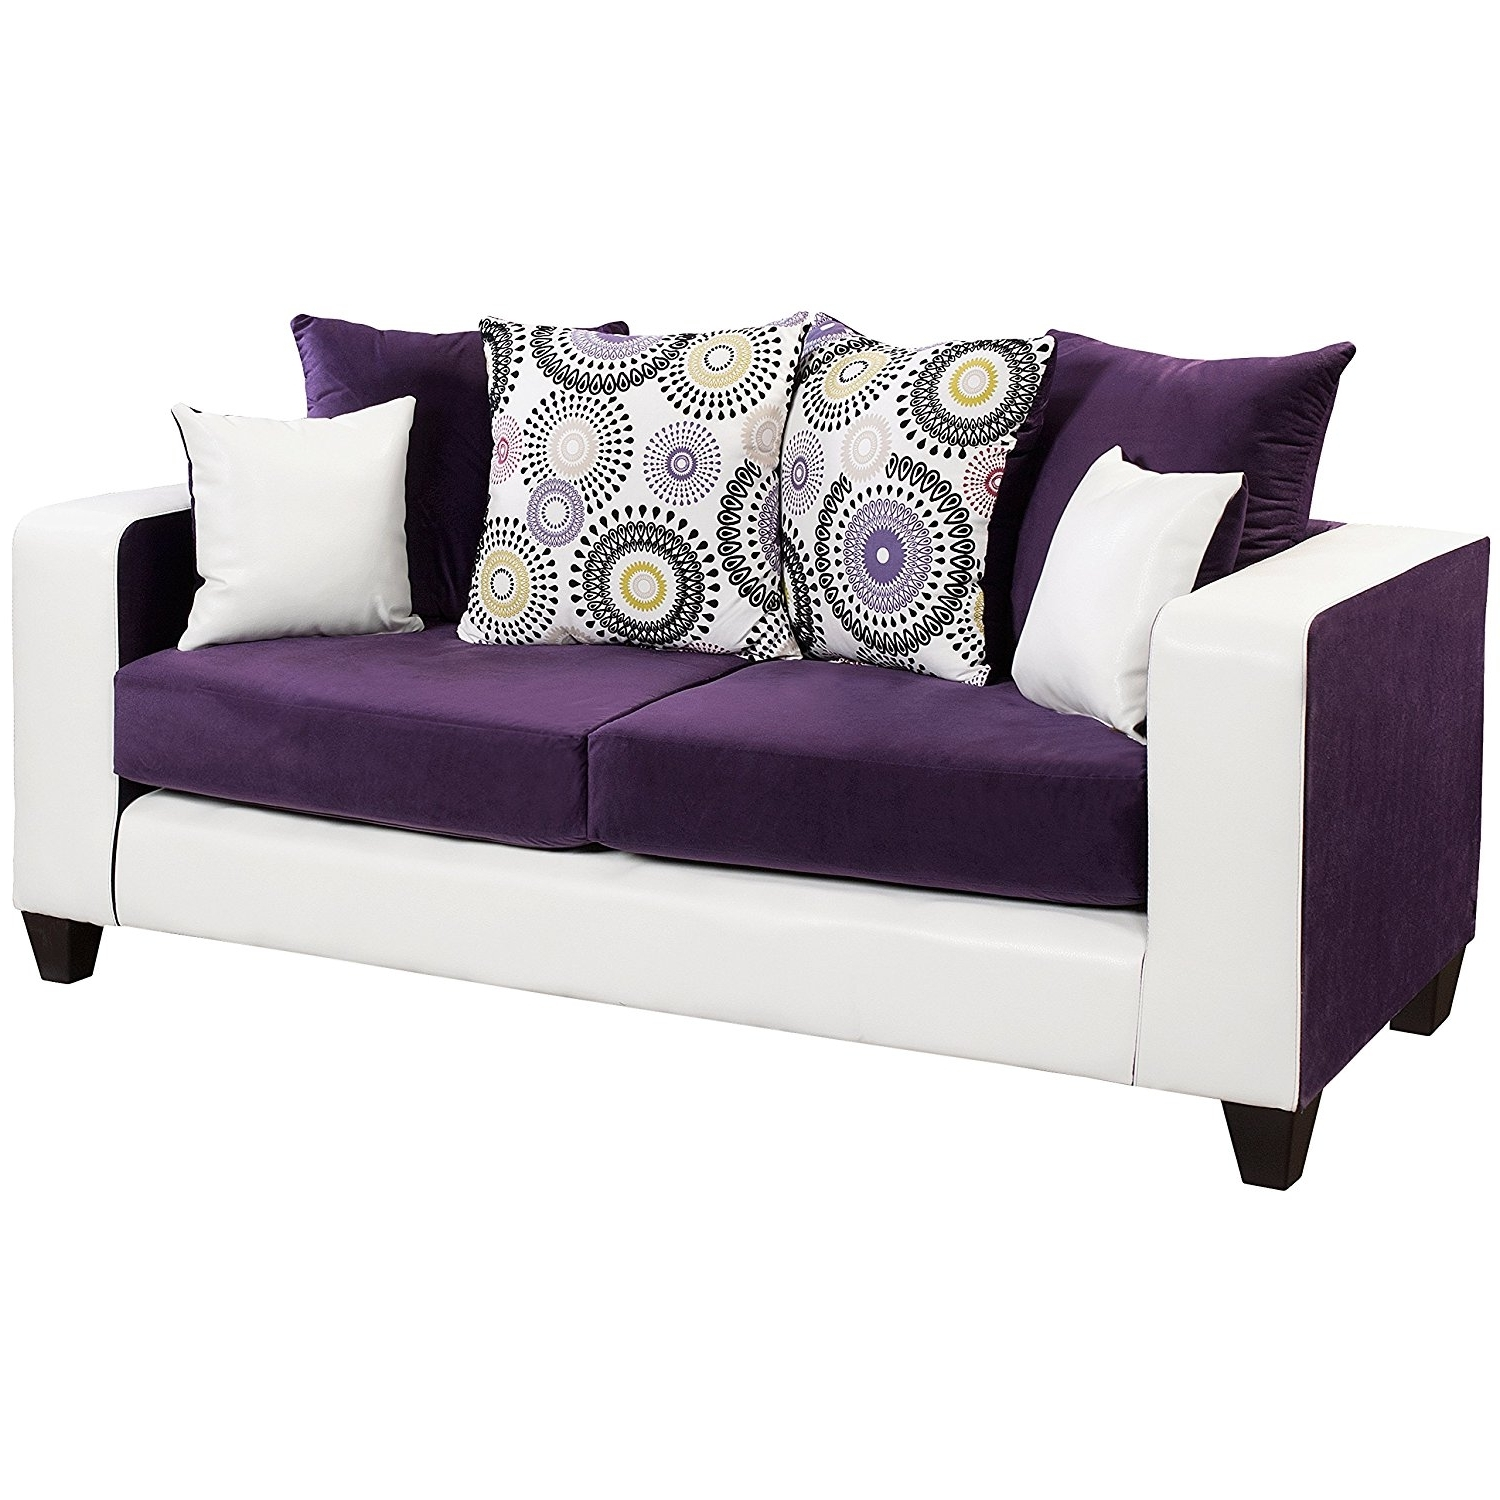 Velvet Purple Sofas In Widely Used Amazon: Flash Furniture Riverstone Implosion Purple Velvet (View 15 of 15)